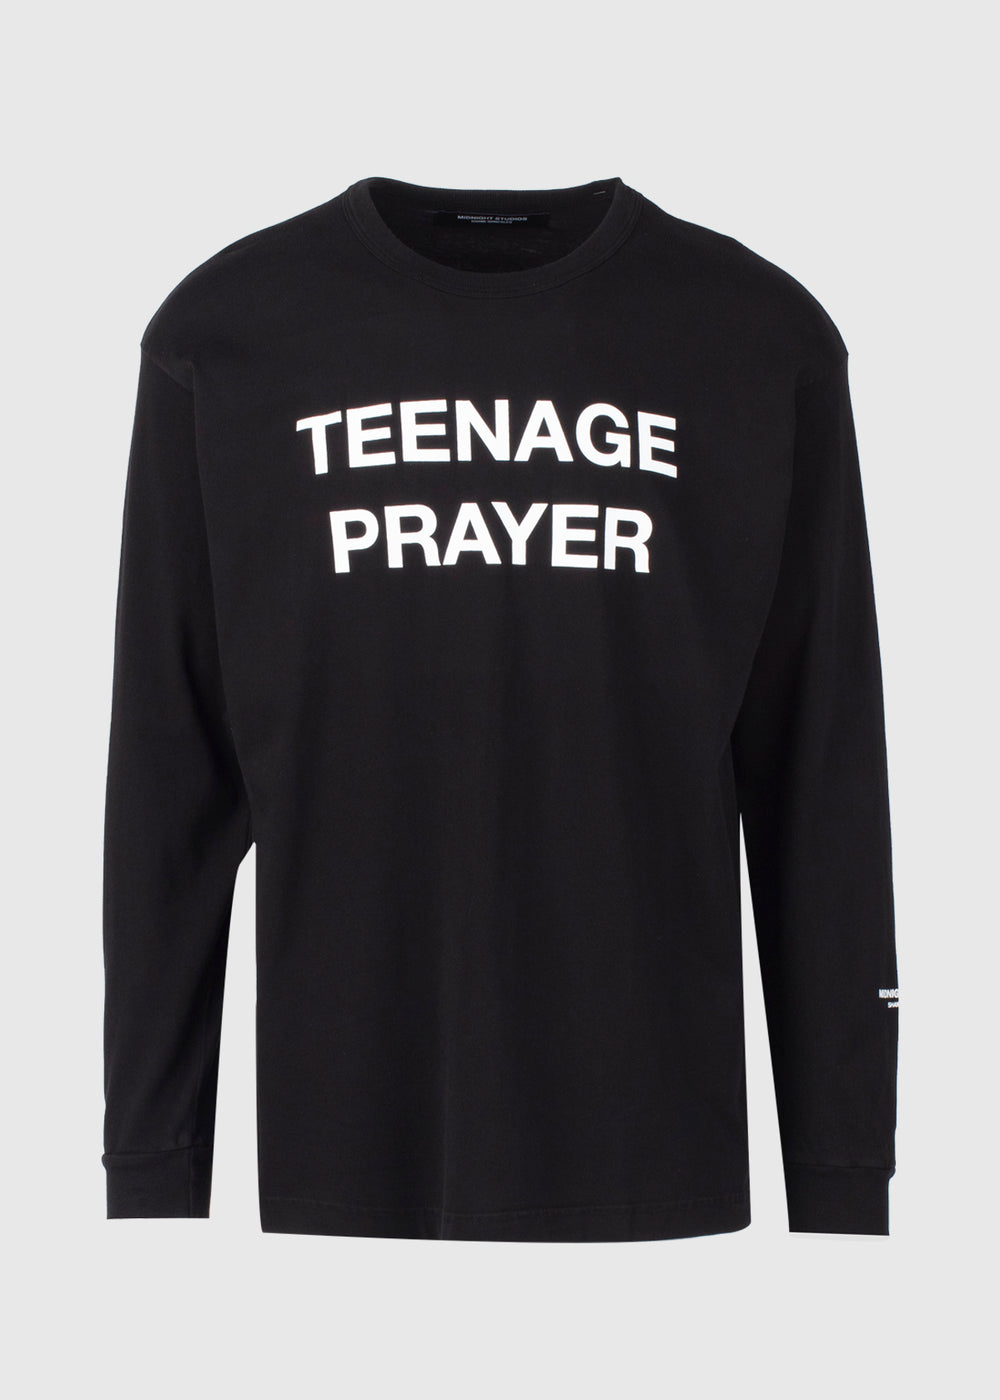 teenage-ls-tee-ms-03a-01-004-blk-1